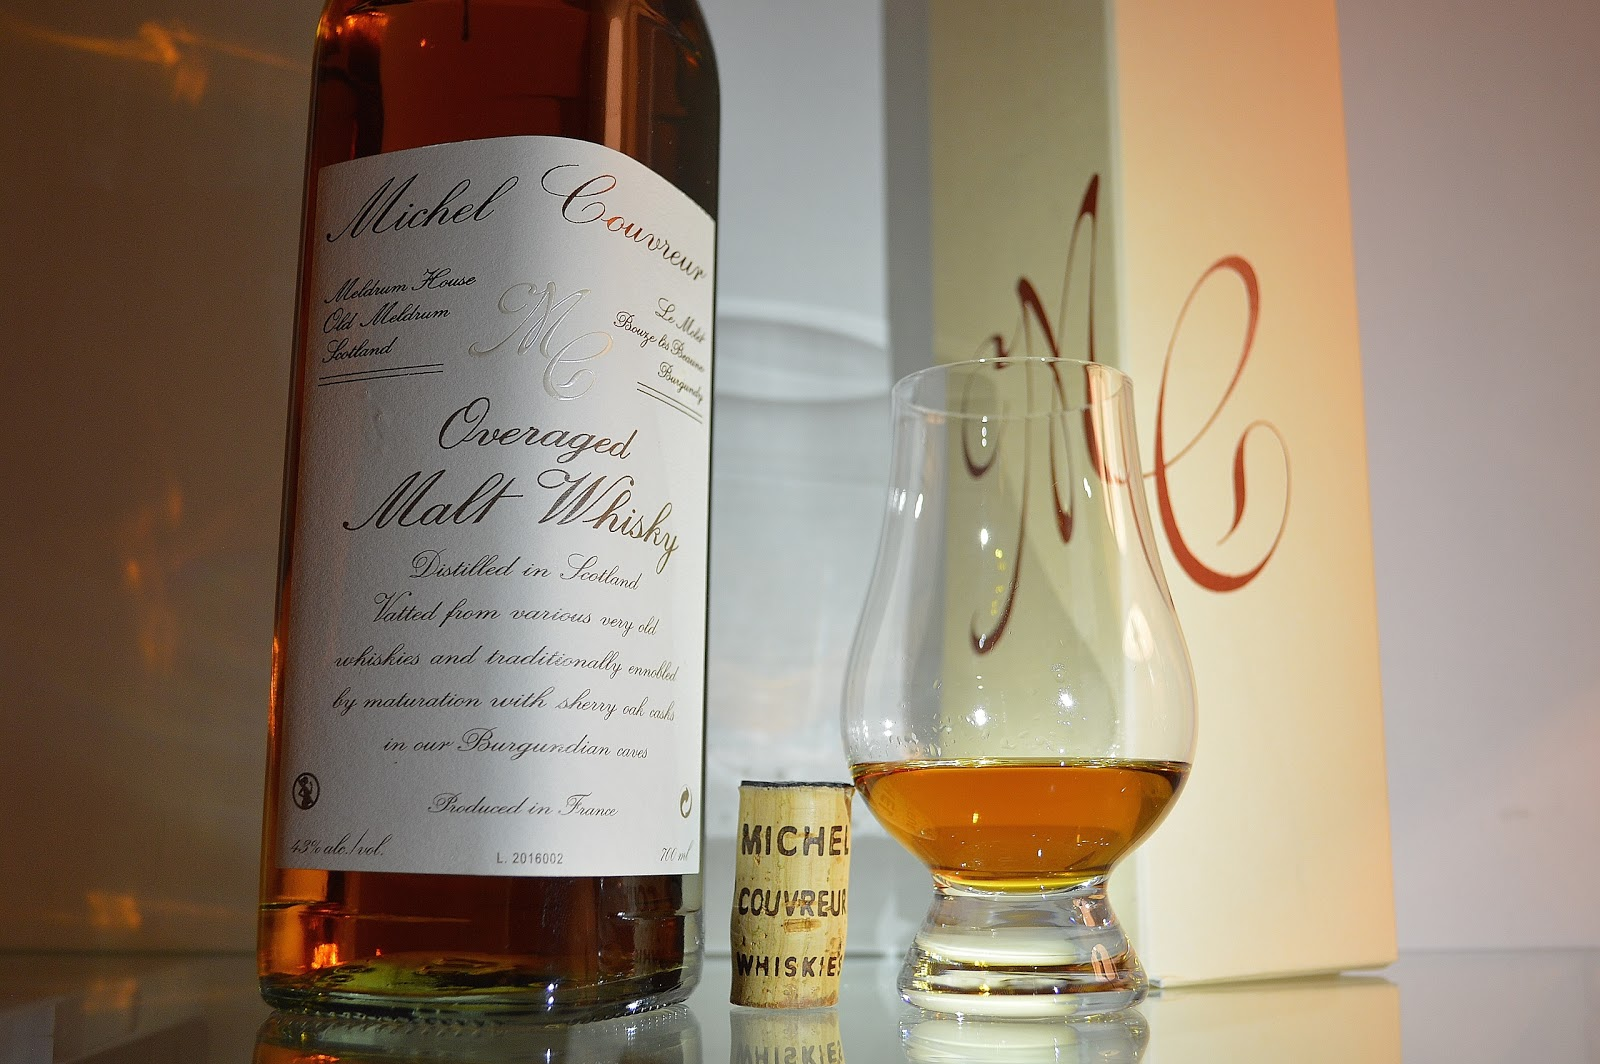 Review Michel Couvreur Overaged 43